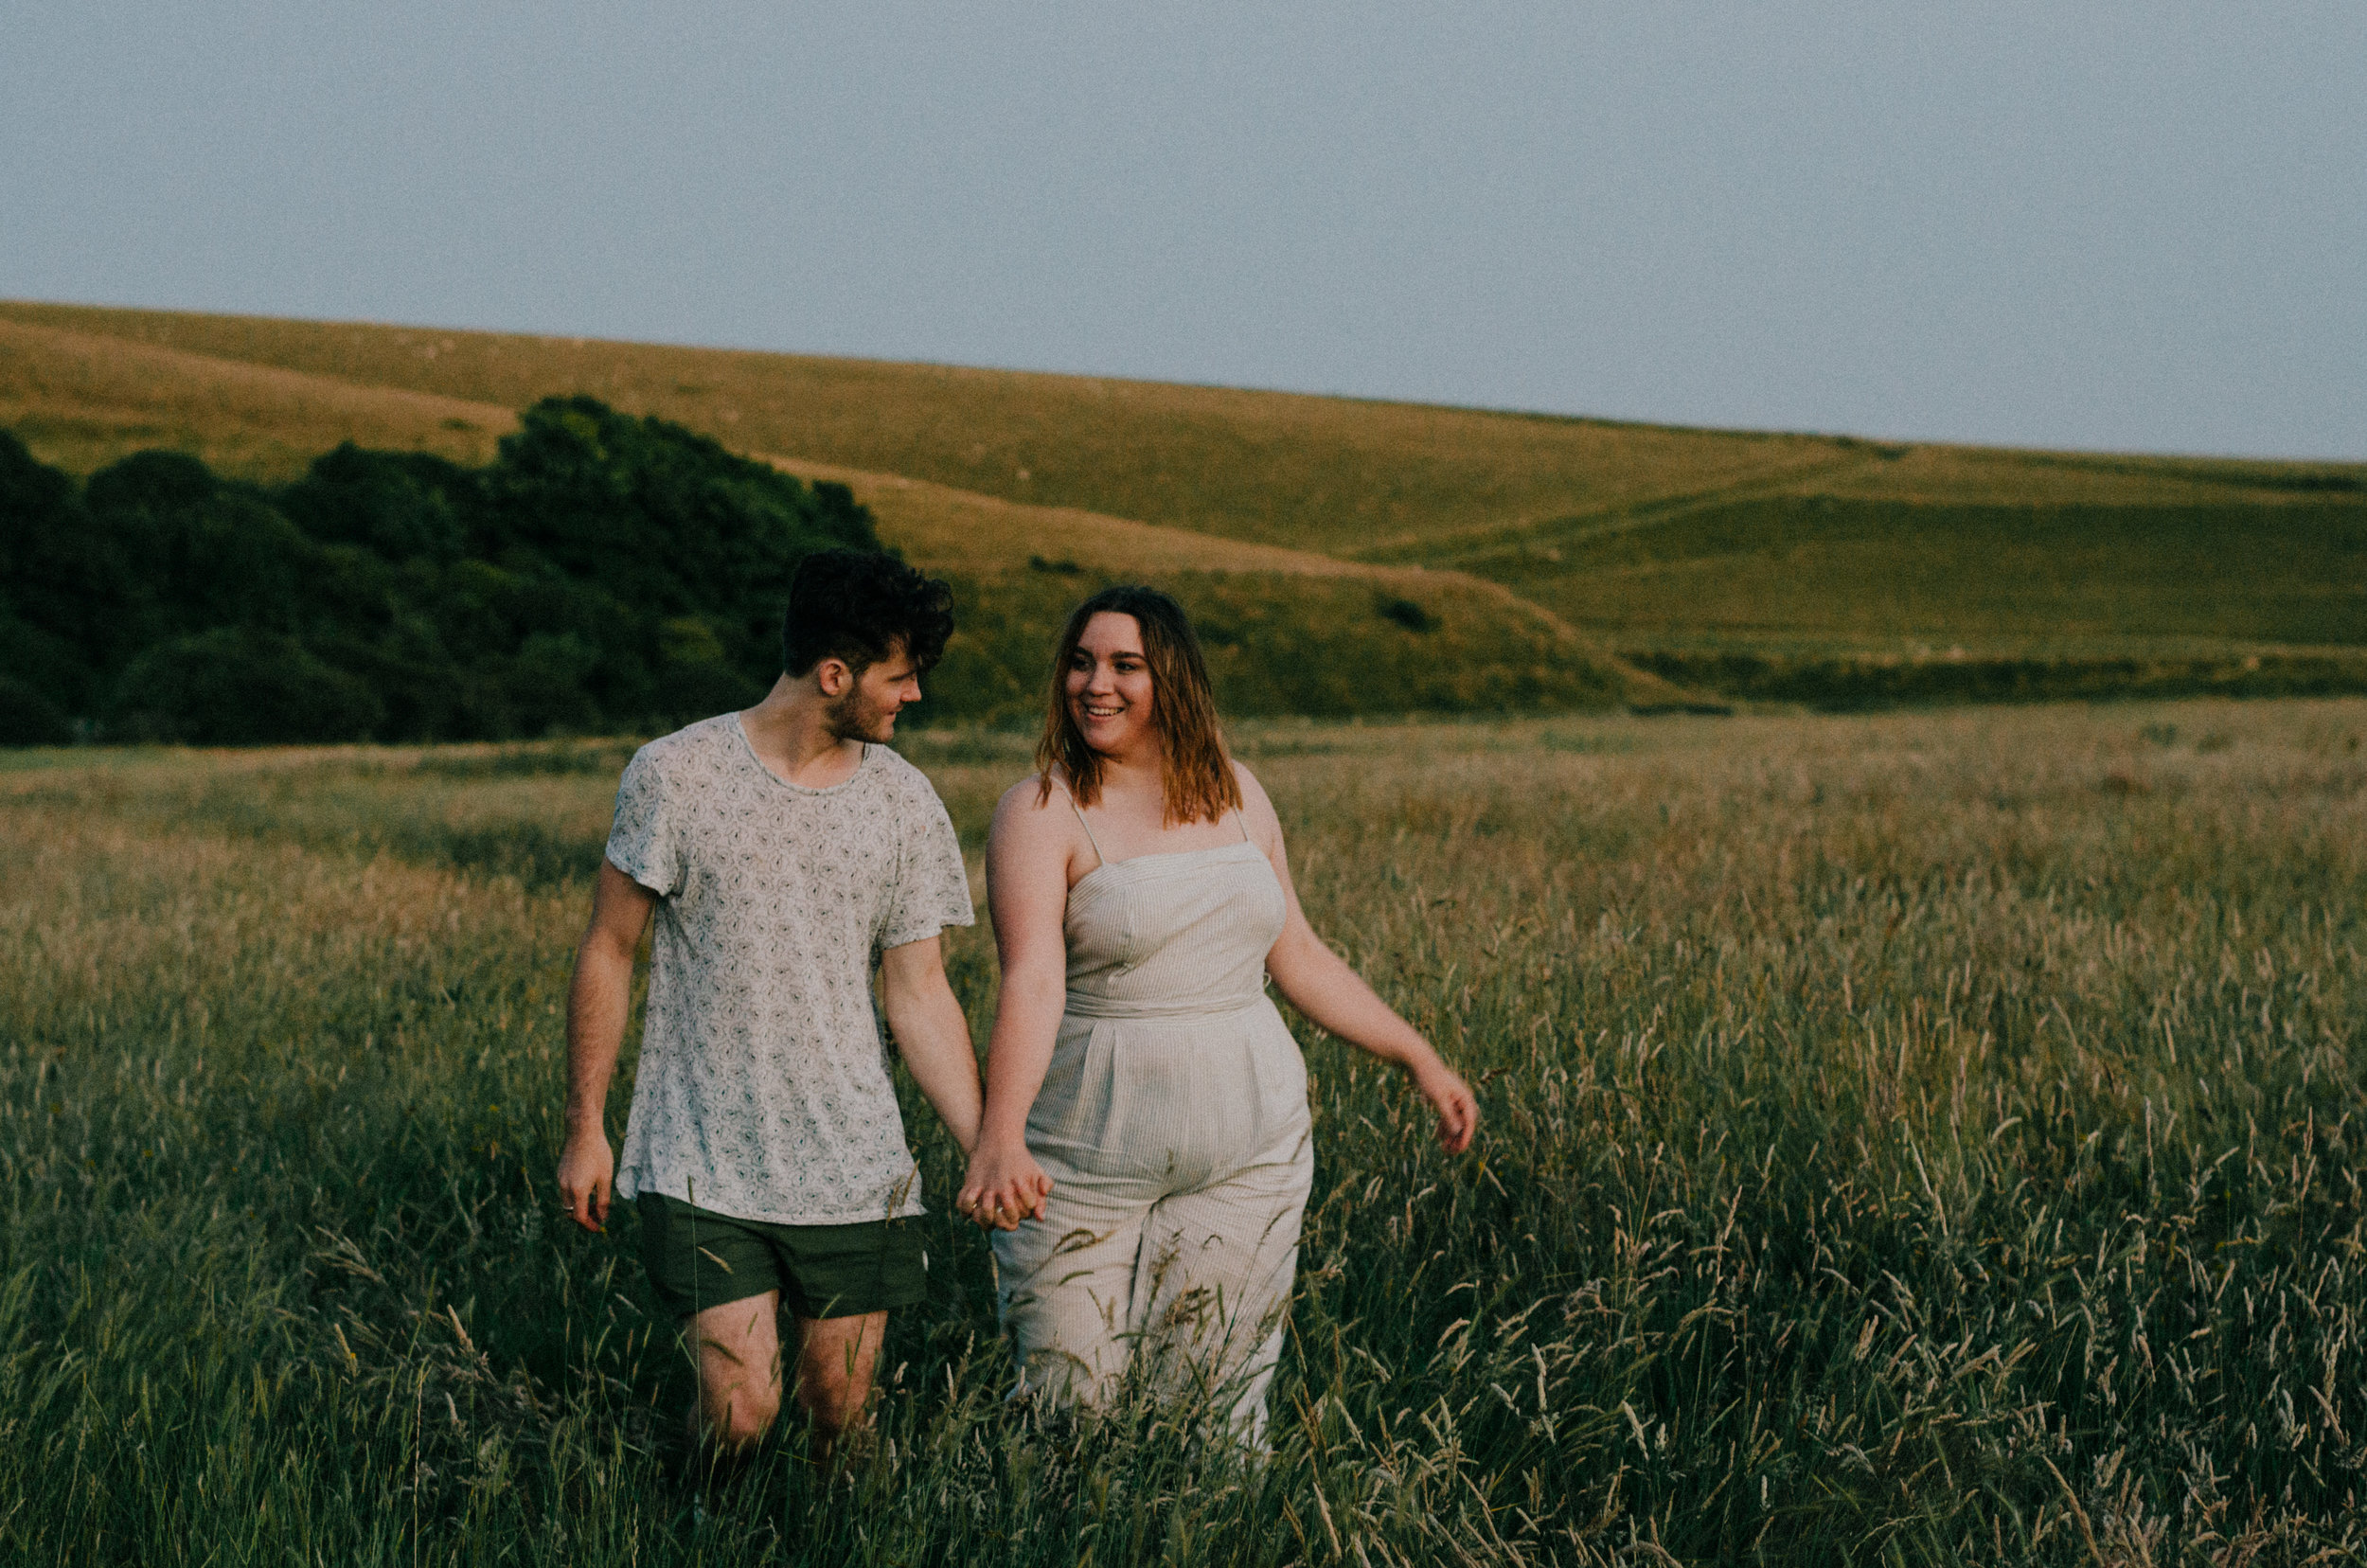 Rebecca & Dougie - Cuckmere Haven - Couple Session - Aiste Saulyte Photography-169.jpg